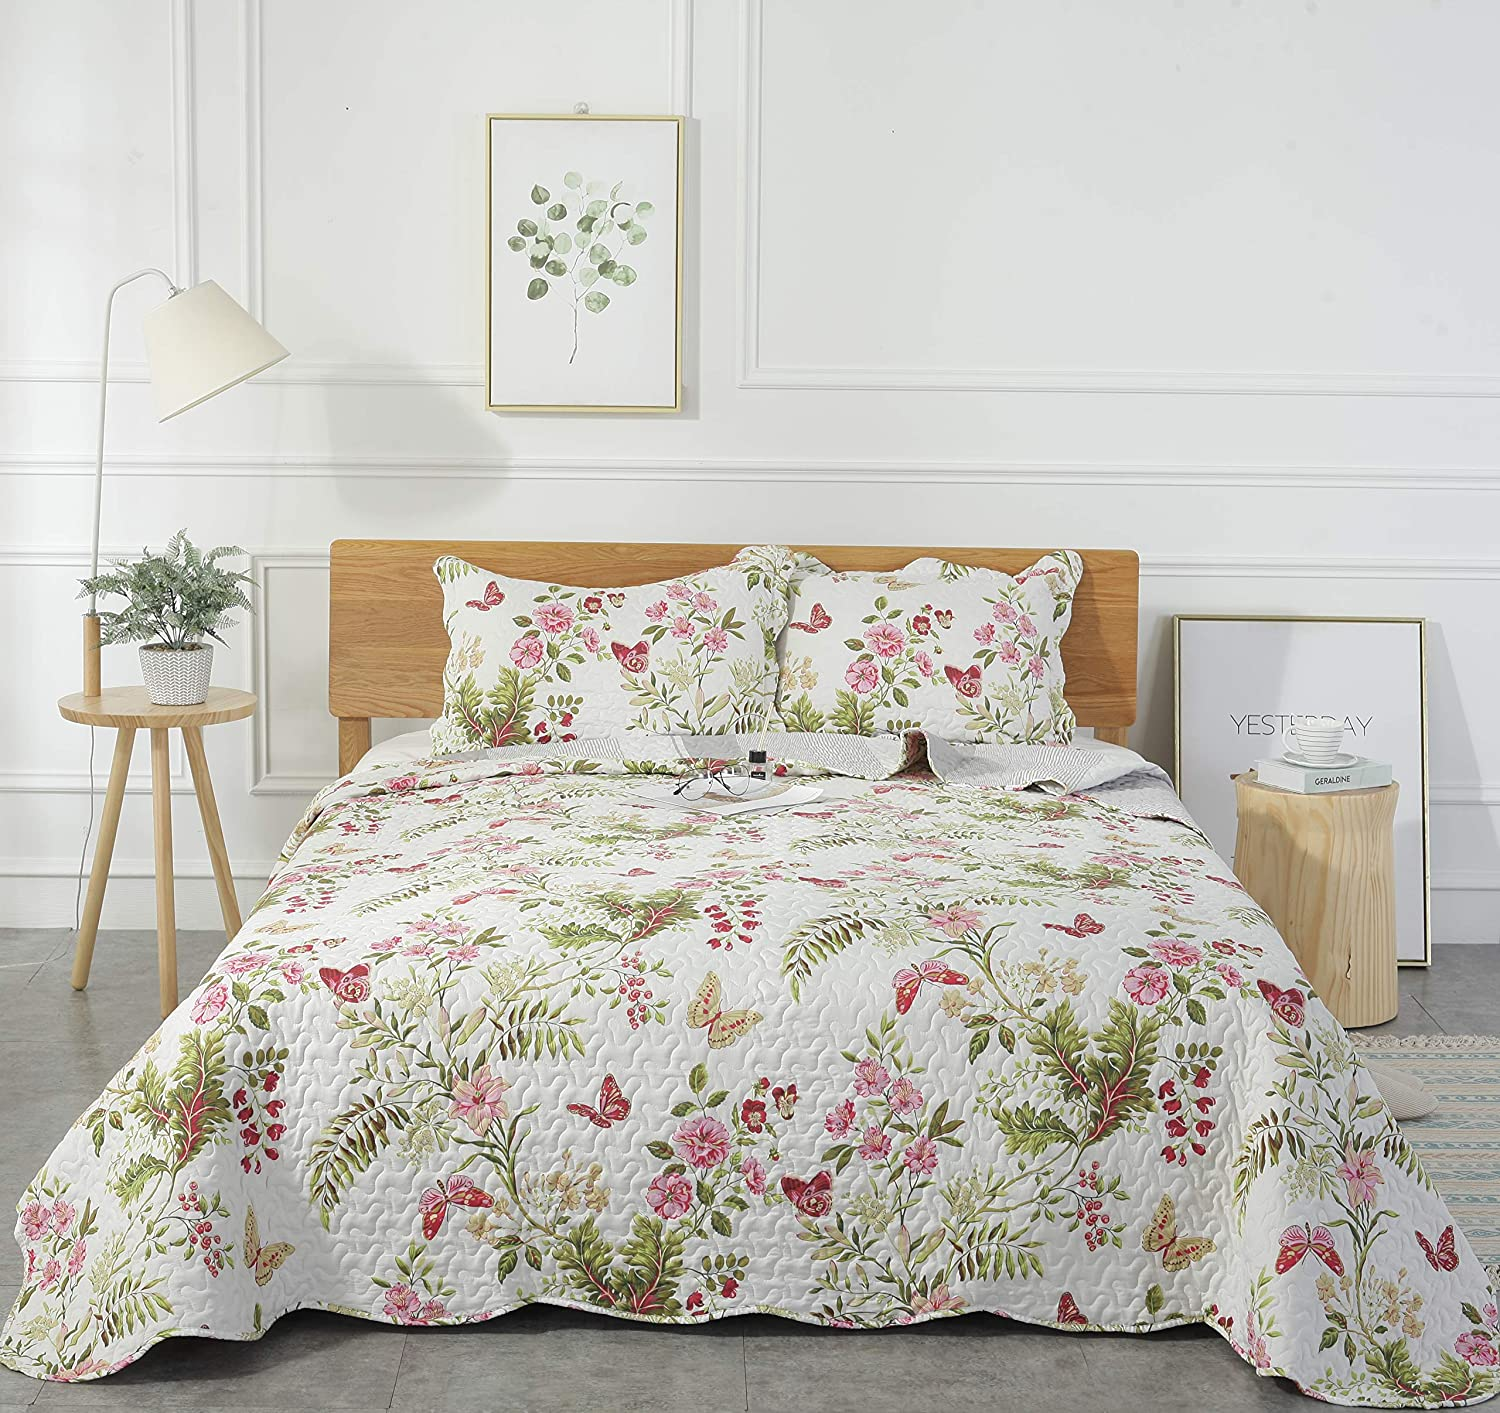 Embroidered Bed Spread Set Quilted Bed Spread Bed Throw Floral Bedding Bed Set